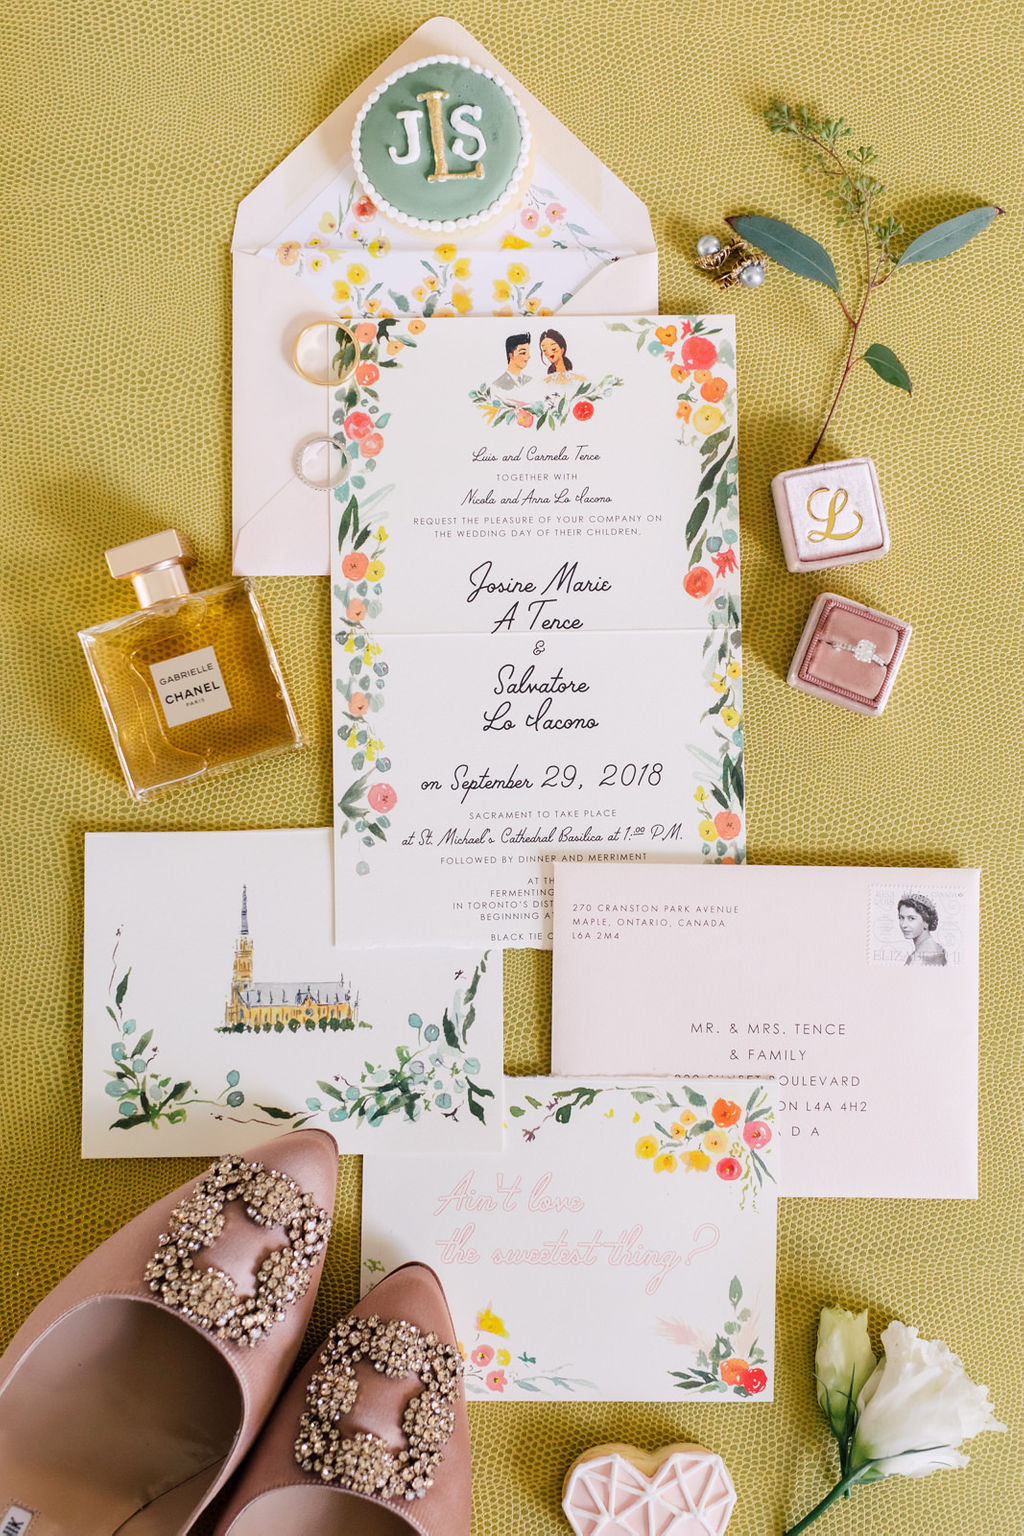 jolly-edition-toronto-wedding tri-fold invitation, tear-away postcard rsvp, printed envelopes, custom envelope liner